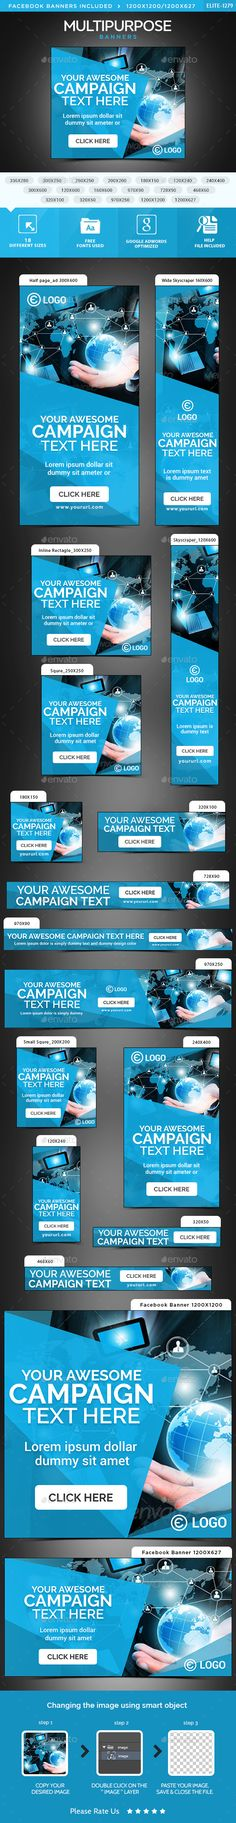 Multipurpose Web Banners Template PSD. Download here: http://graphicriver.net/item/multipurpose-banners/15277137?ref=ksioks